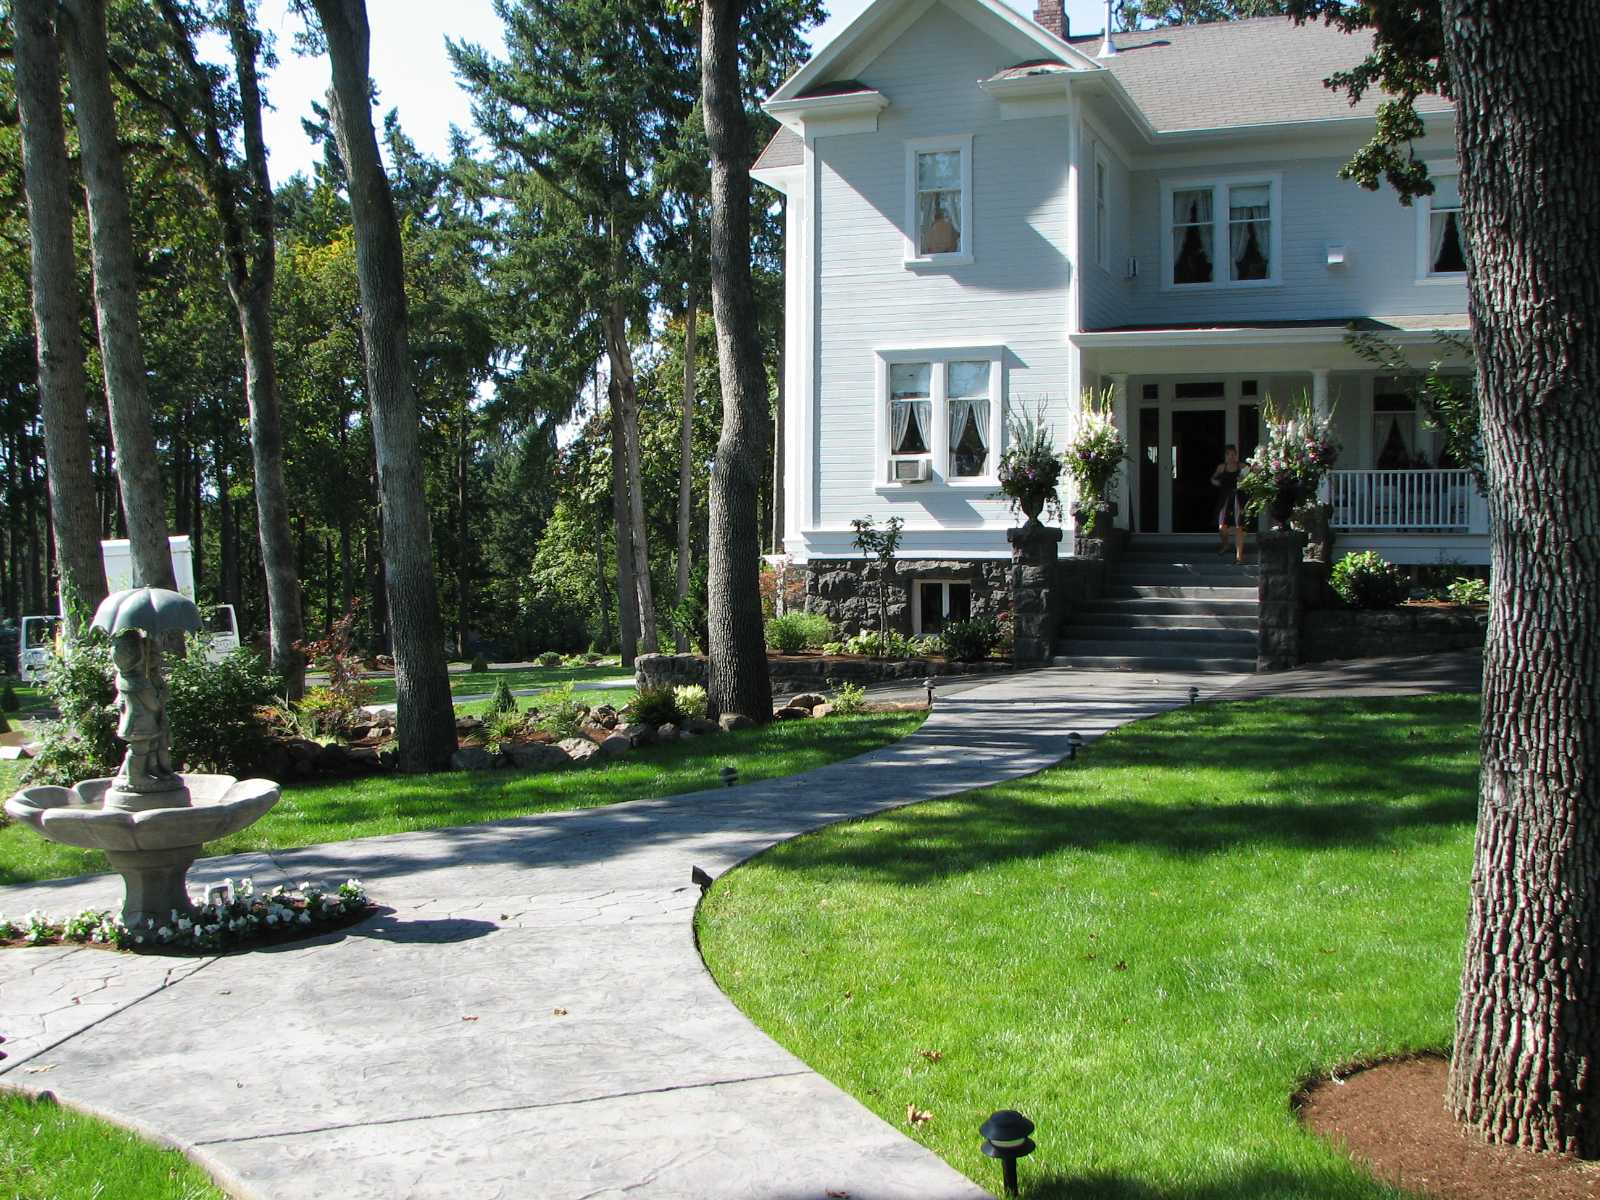 Photo of Sandes of Time Bed and Breakfast - house and grounds